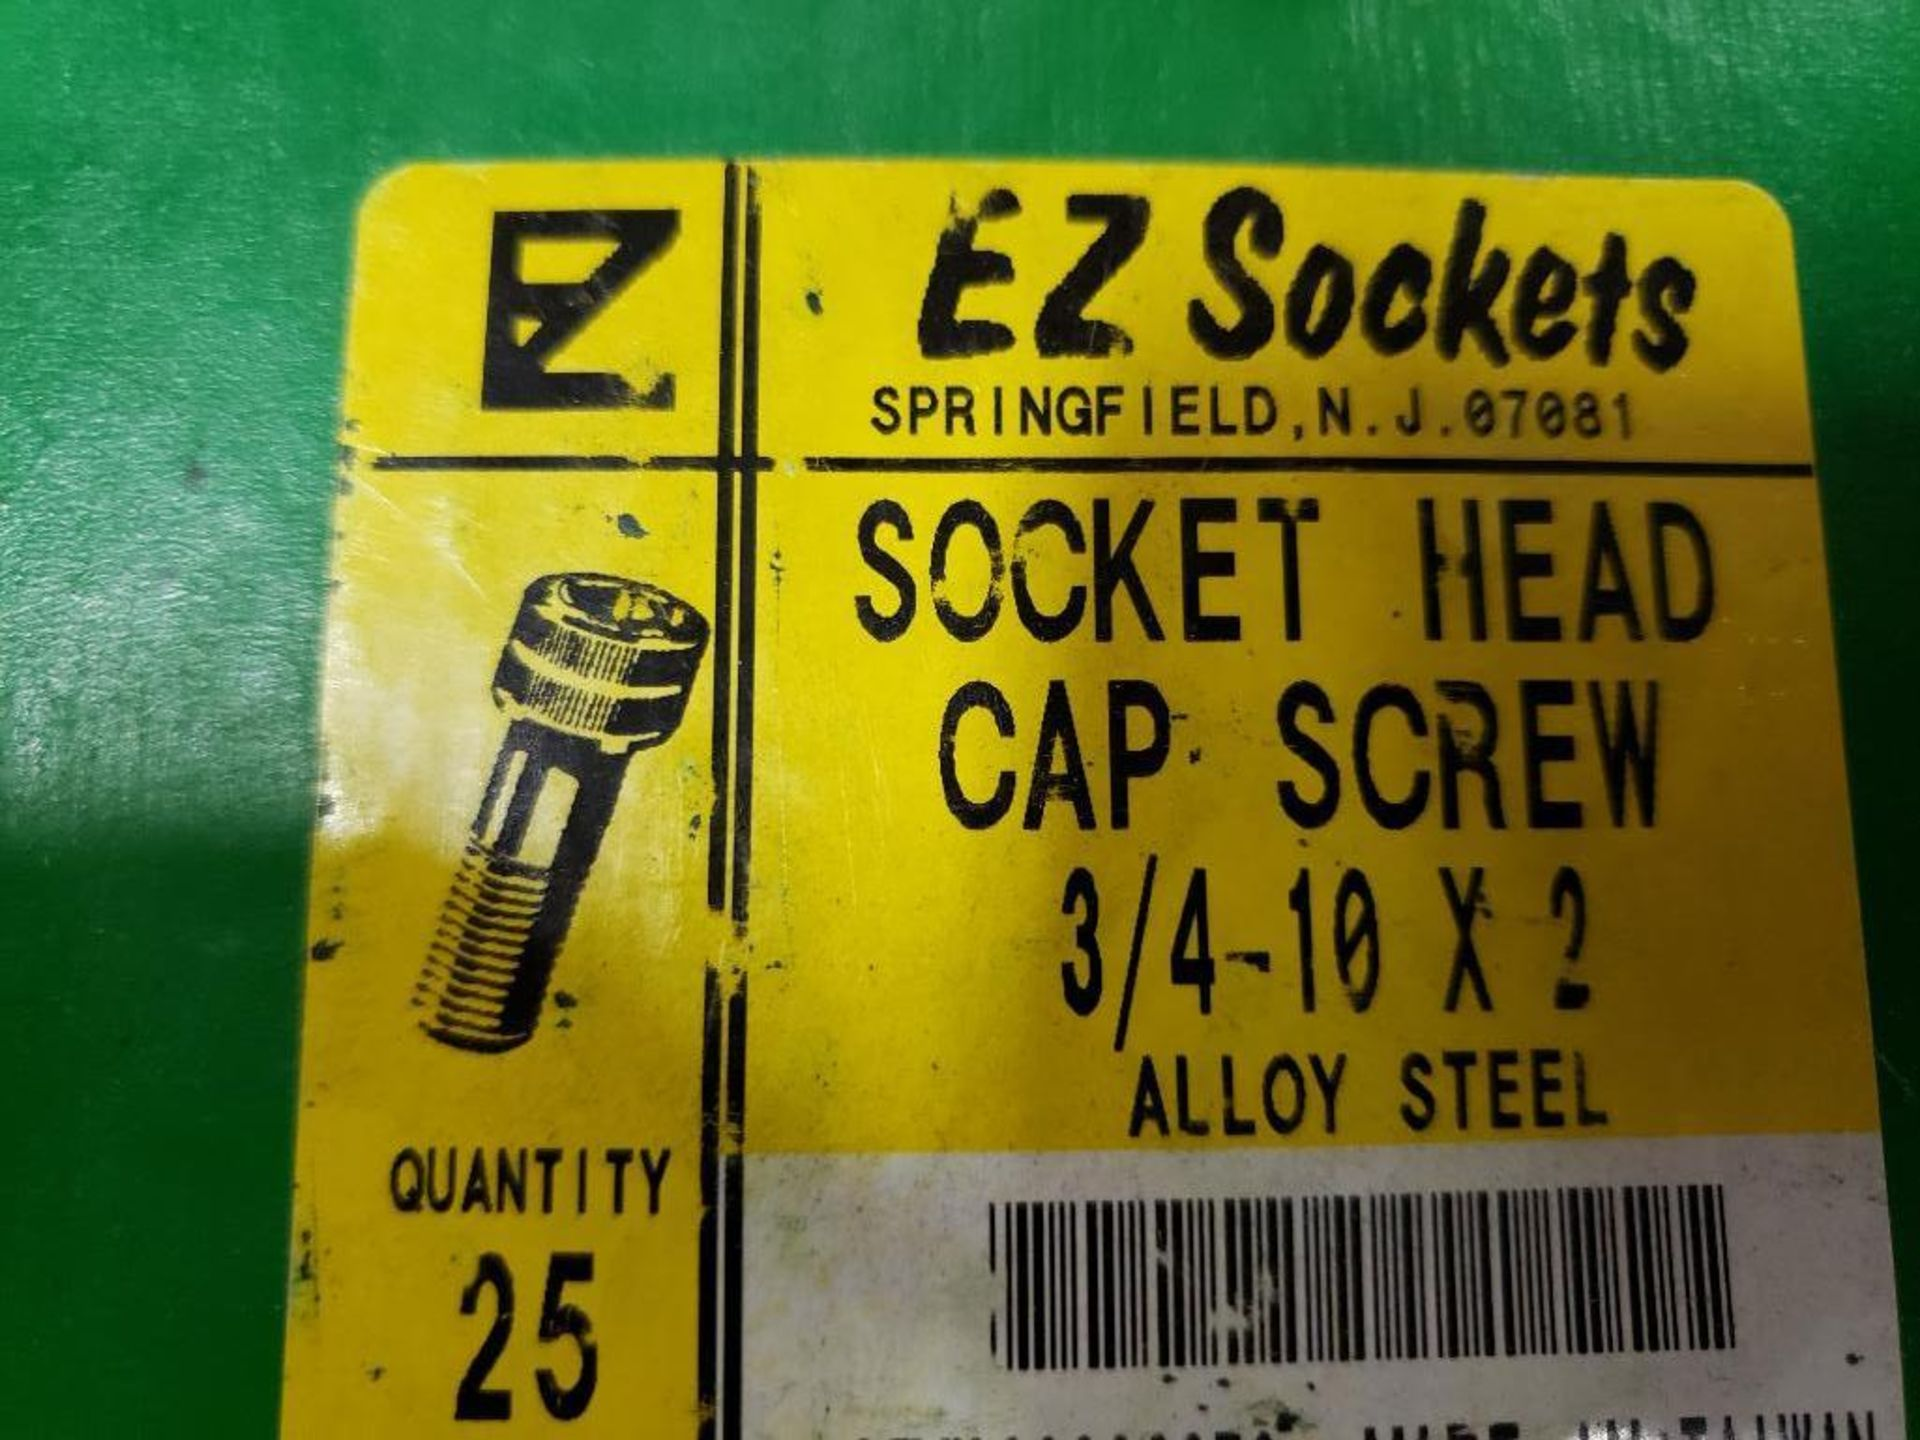 """Large Qty of assorted EZ Sockets socket head cap screw. 3/4"""", 3/8"""". New in Box. - Image 5 of 5"""